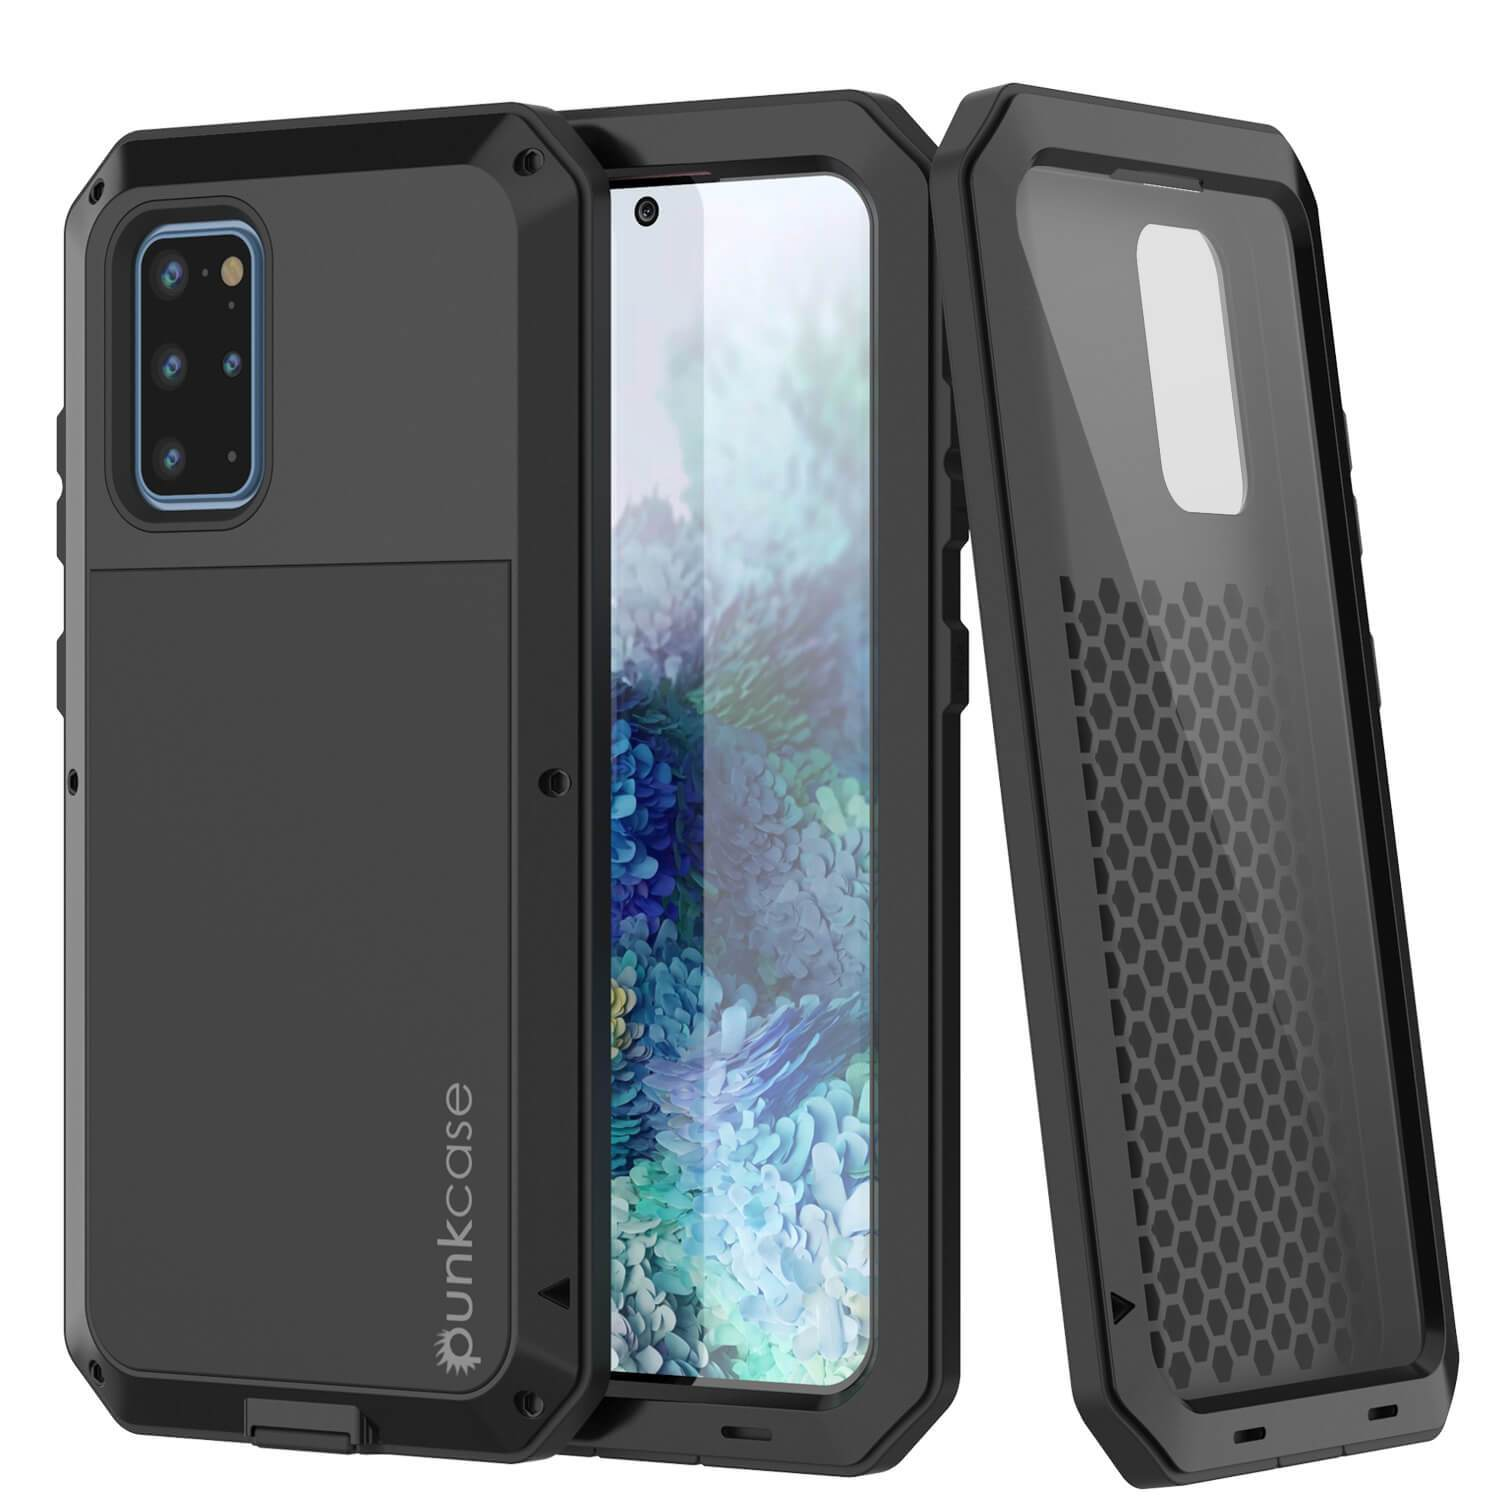 Galaxy s20+ Plus Metal Case, Heavy Duty Military Grade Rugged Armor Cover [Black]